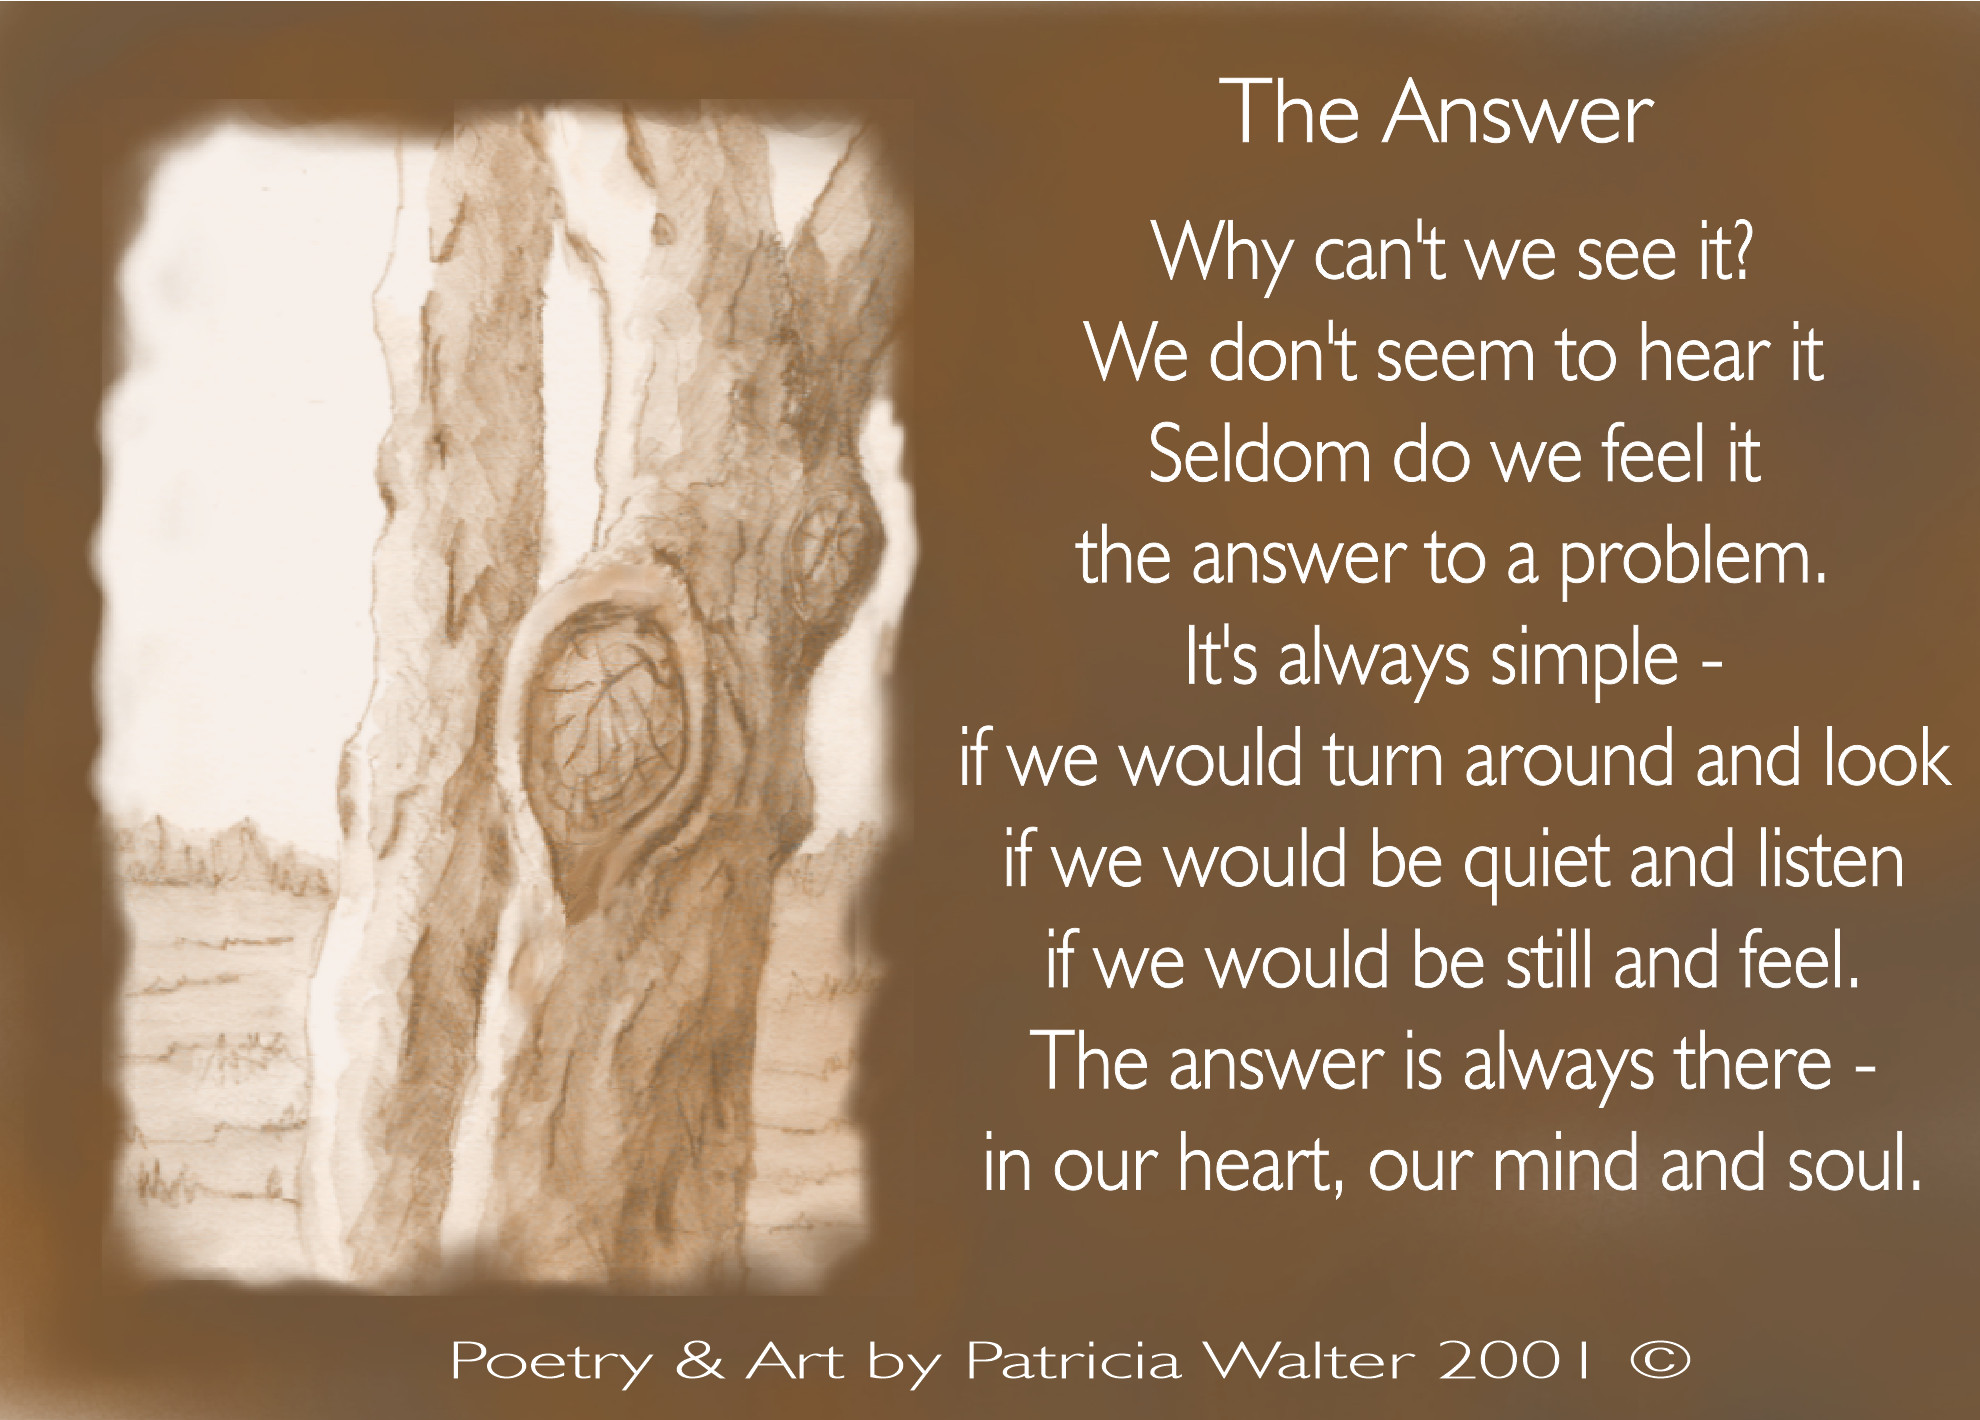 The Answer Why can't we see it? We don't seem to hear it Seldom do we feel it the answer to a problem. It's always simple - if we would turn around and look if we would be quiet and listen if we would be still and feel. The answer is always there - in our heart, our mind and soul. Poetry & Art by Patricia Walter 2001